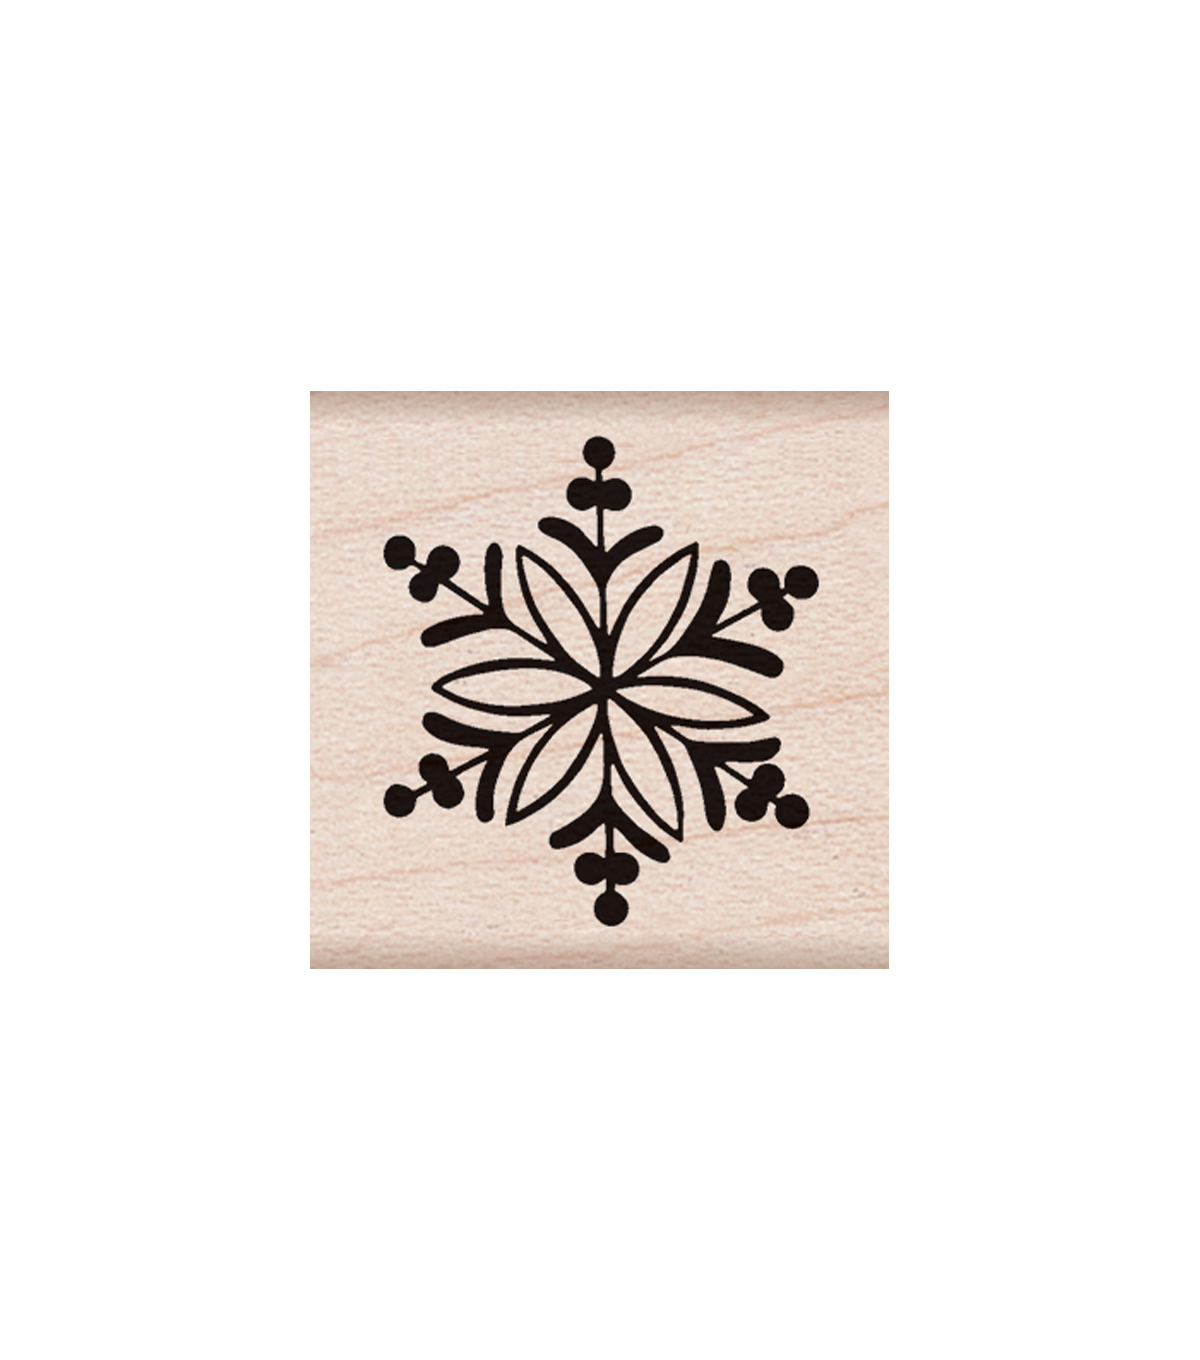 Hero Arts Wood Mounted Rubber Stamp-Little Snowflake